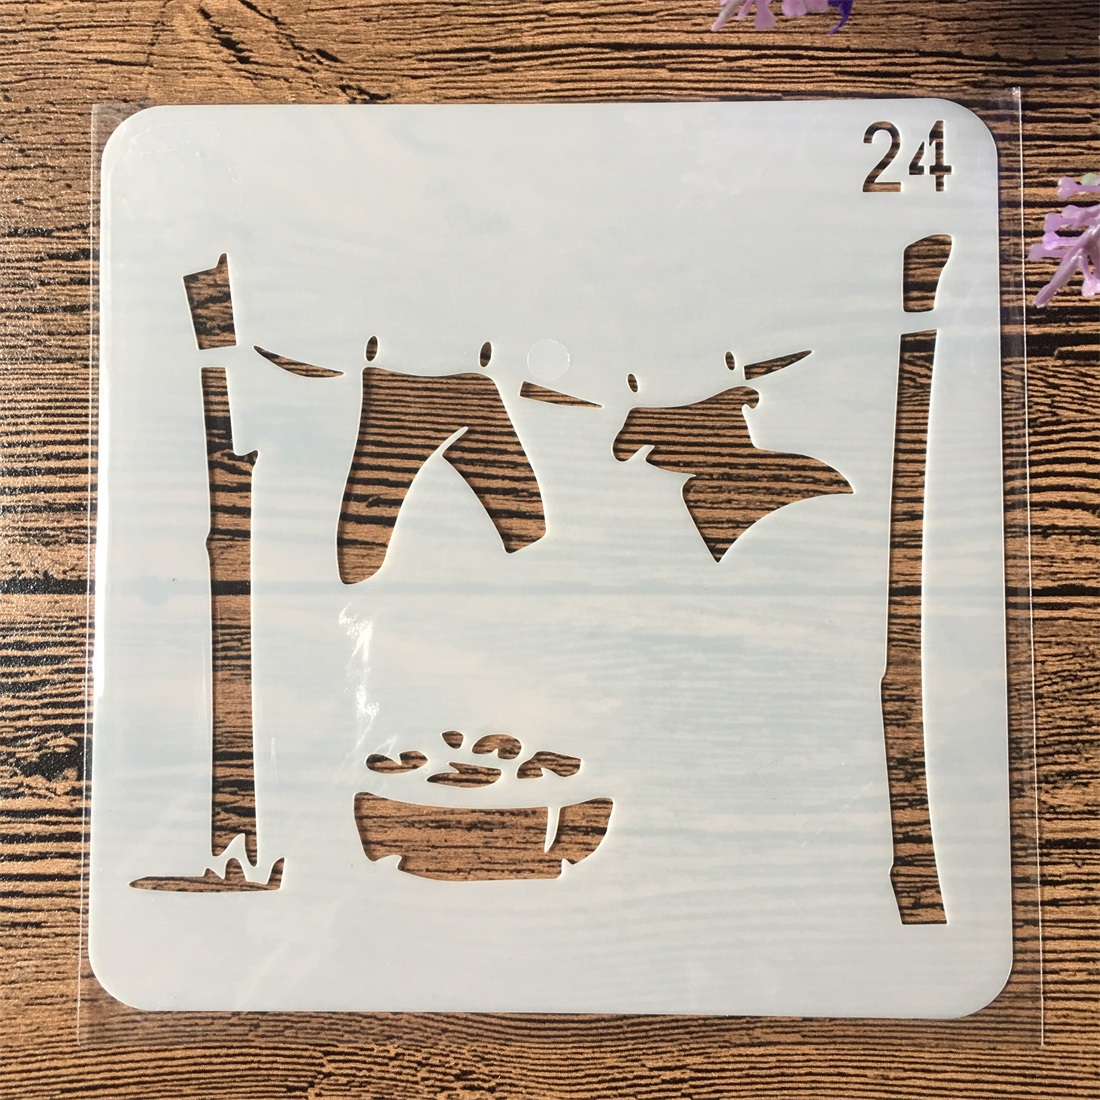 1Pcs 15cm Clothes Drying DIY Layering Stencils Wall Painting Scrapbook Coloring Embossing Album Decorative Card Template